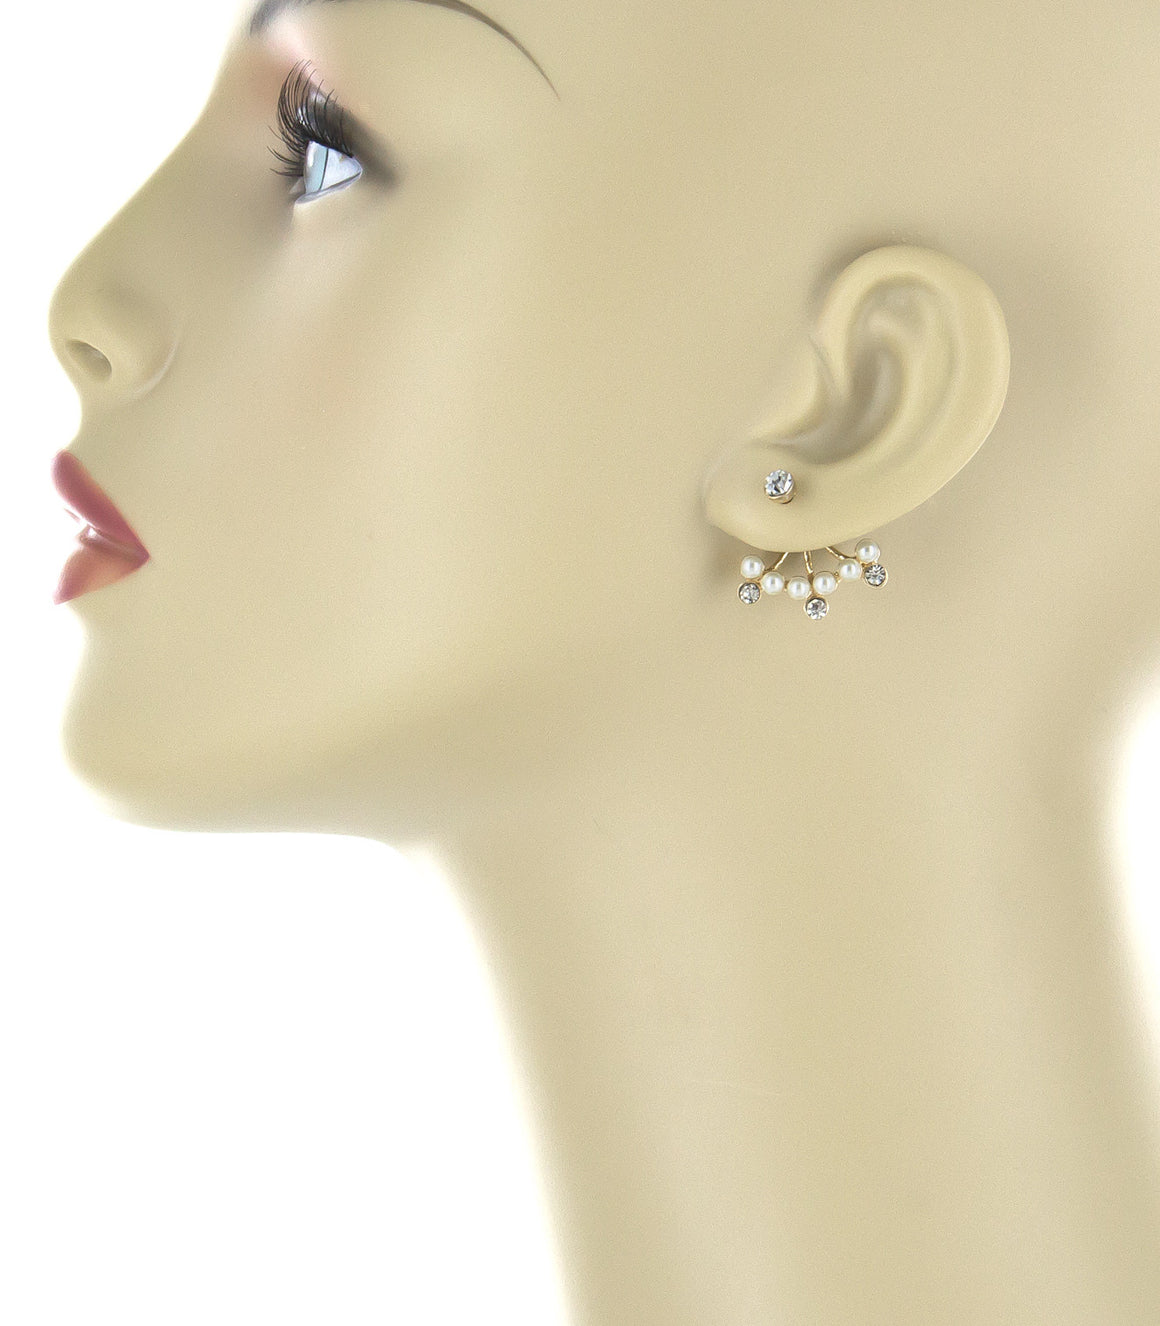 Delicate pearl drop earring jackets.